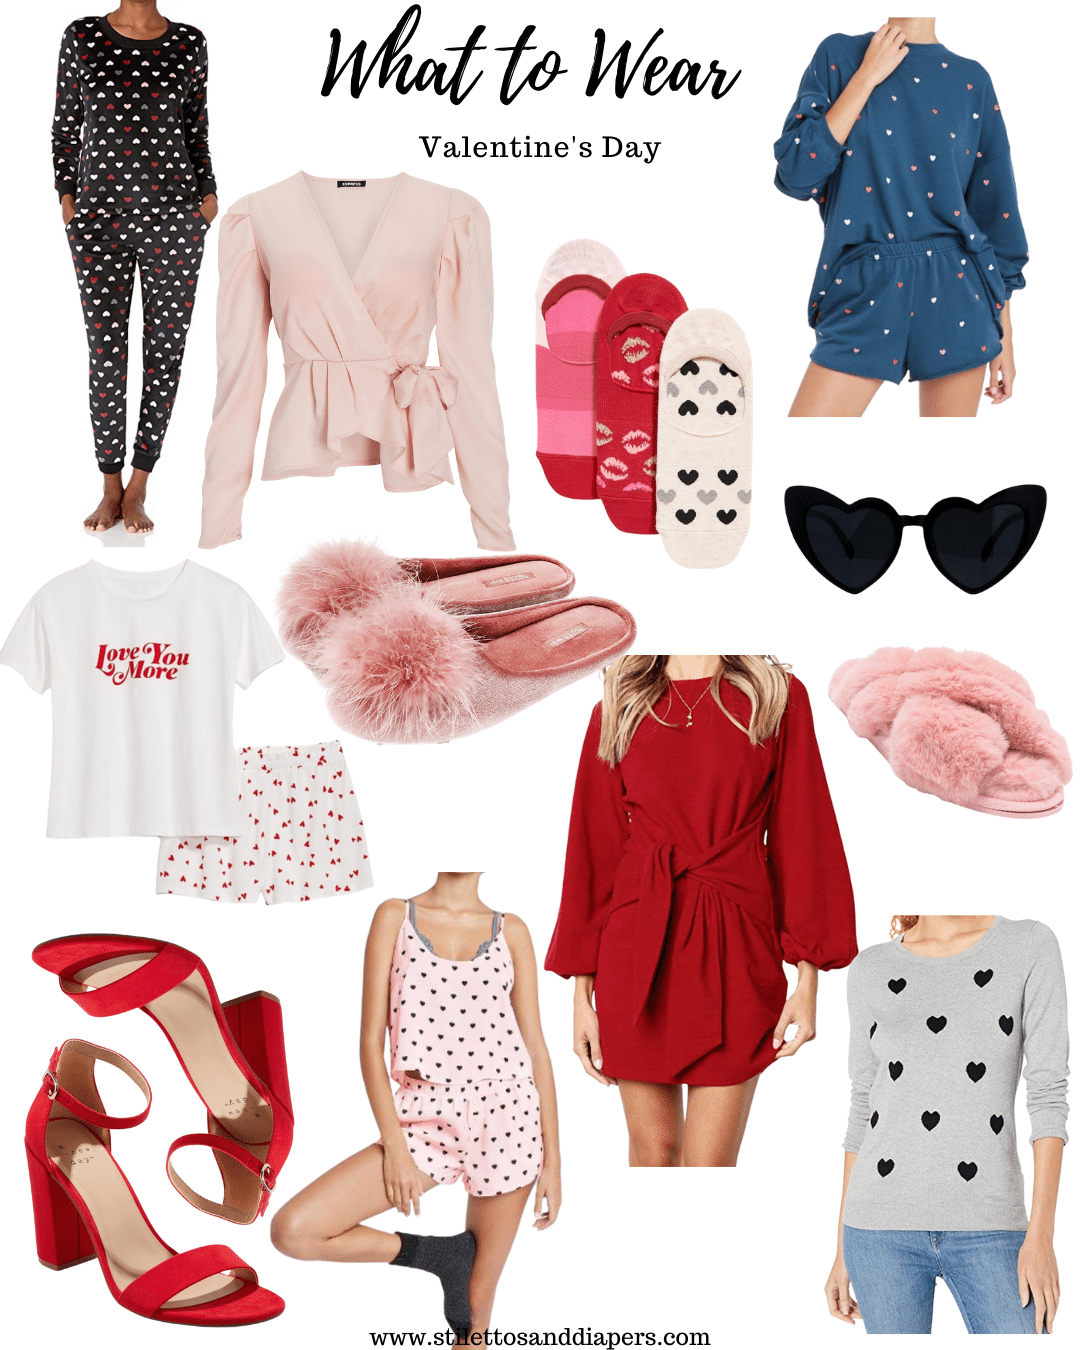 Valentine's Day Outfit Ideas, Stilettos and Diapers